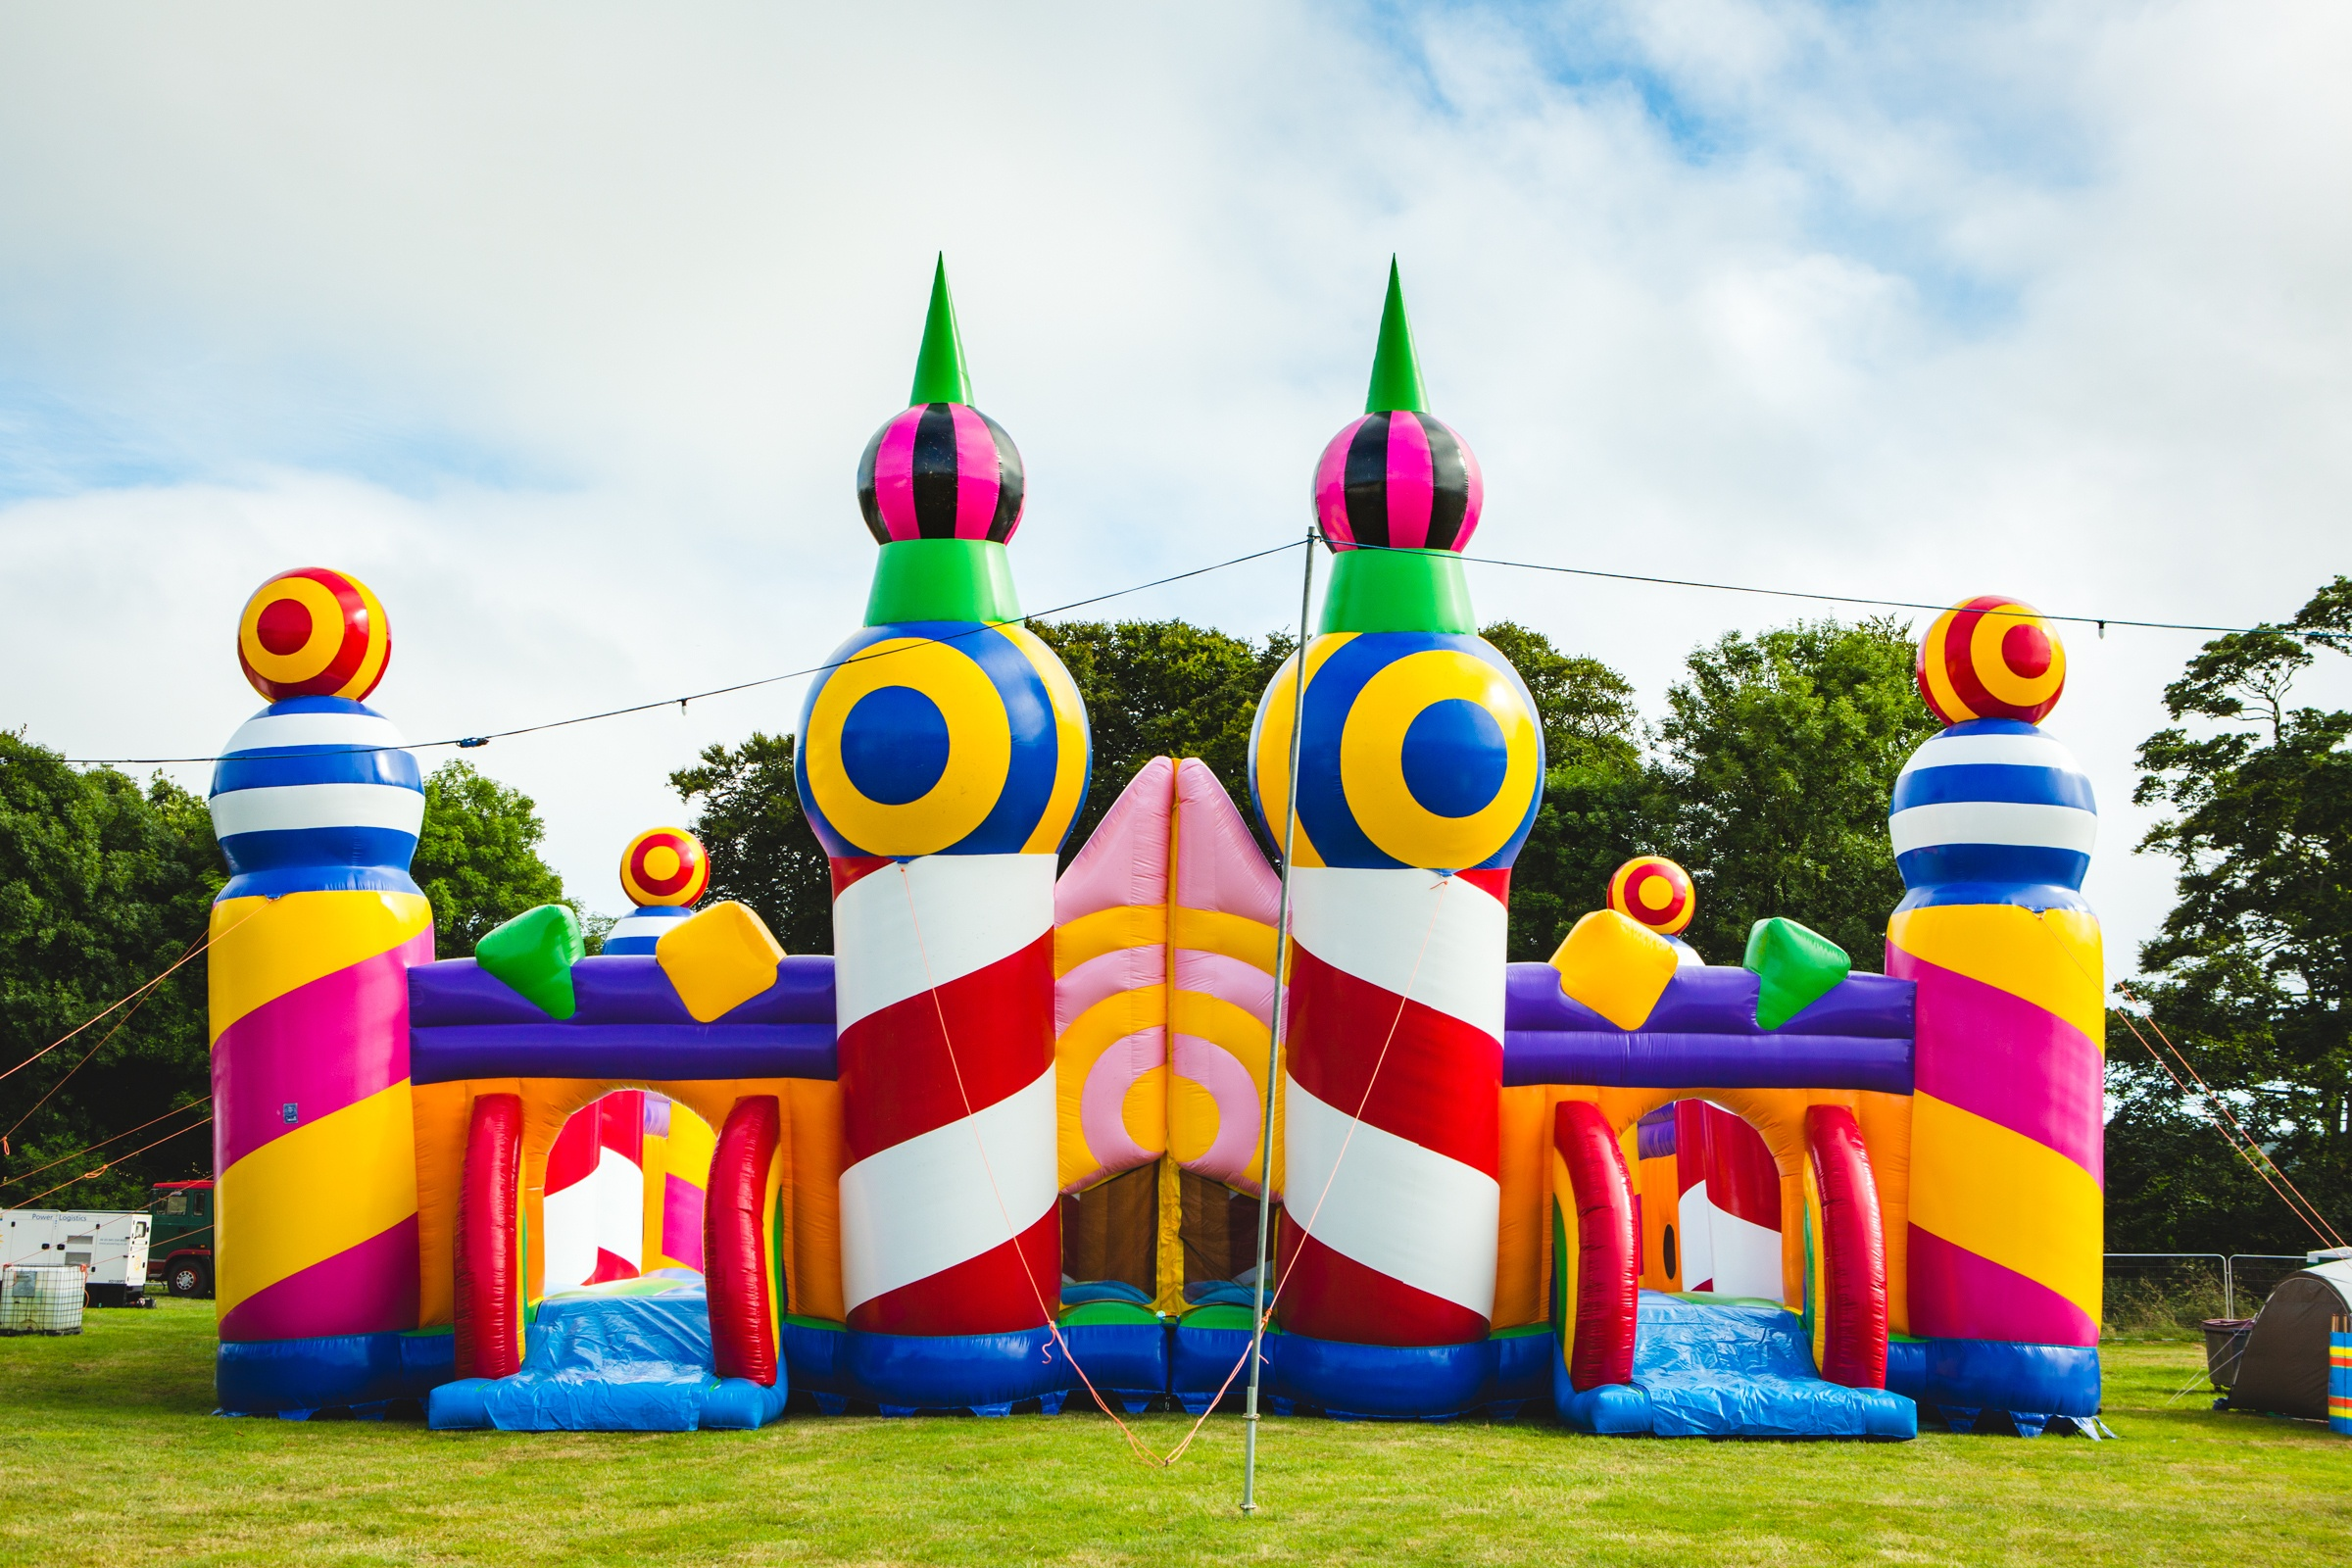 The World's Biggest Bouncy Castle image